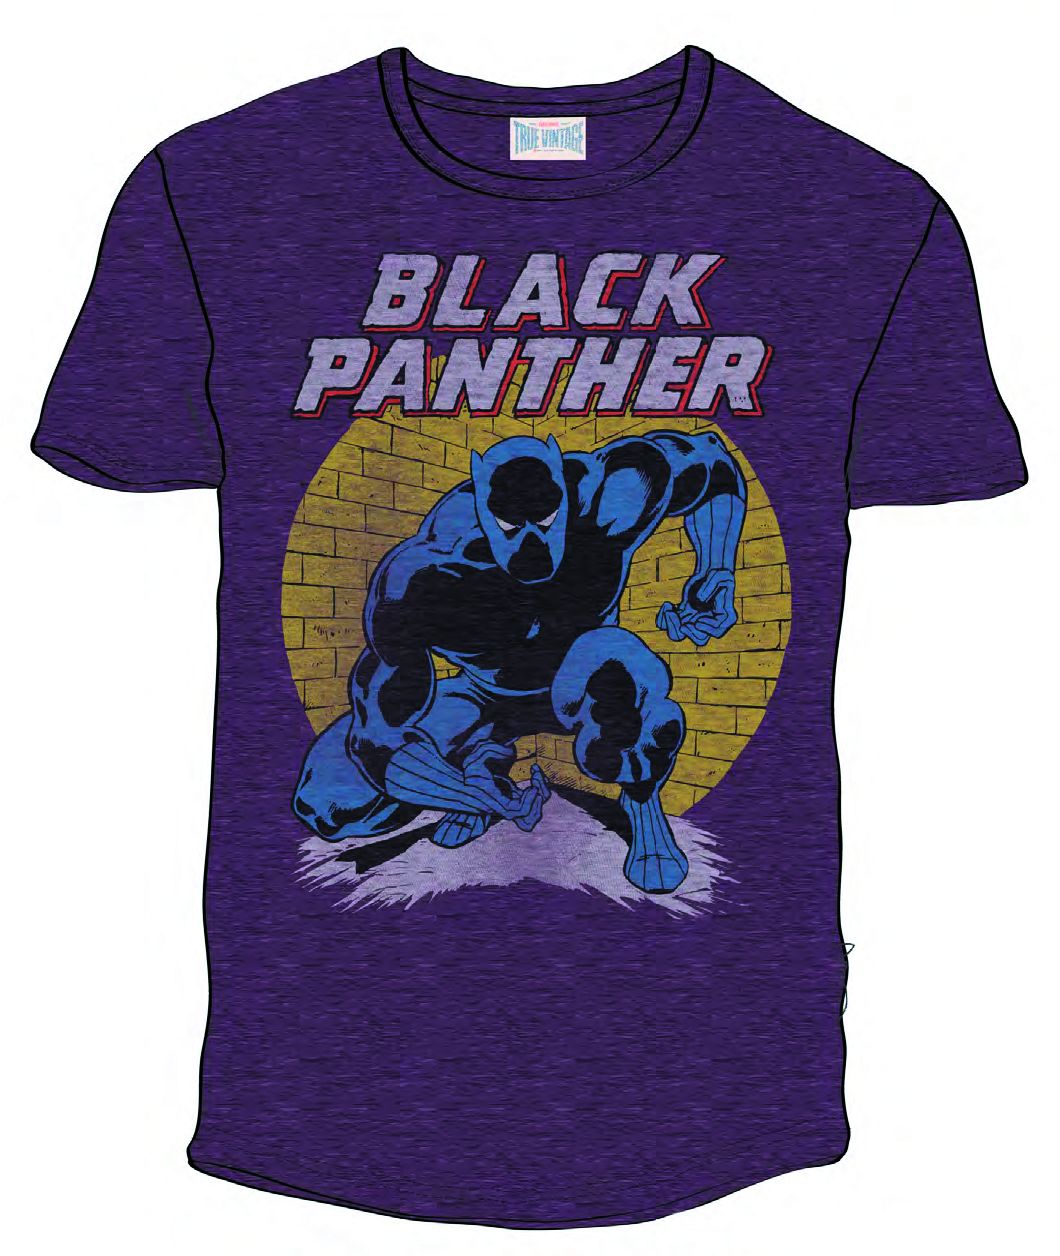 BLACK PANTHER PX BLACKBERRY HEATHER T/S MED